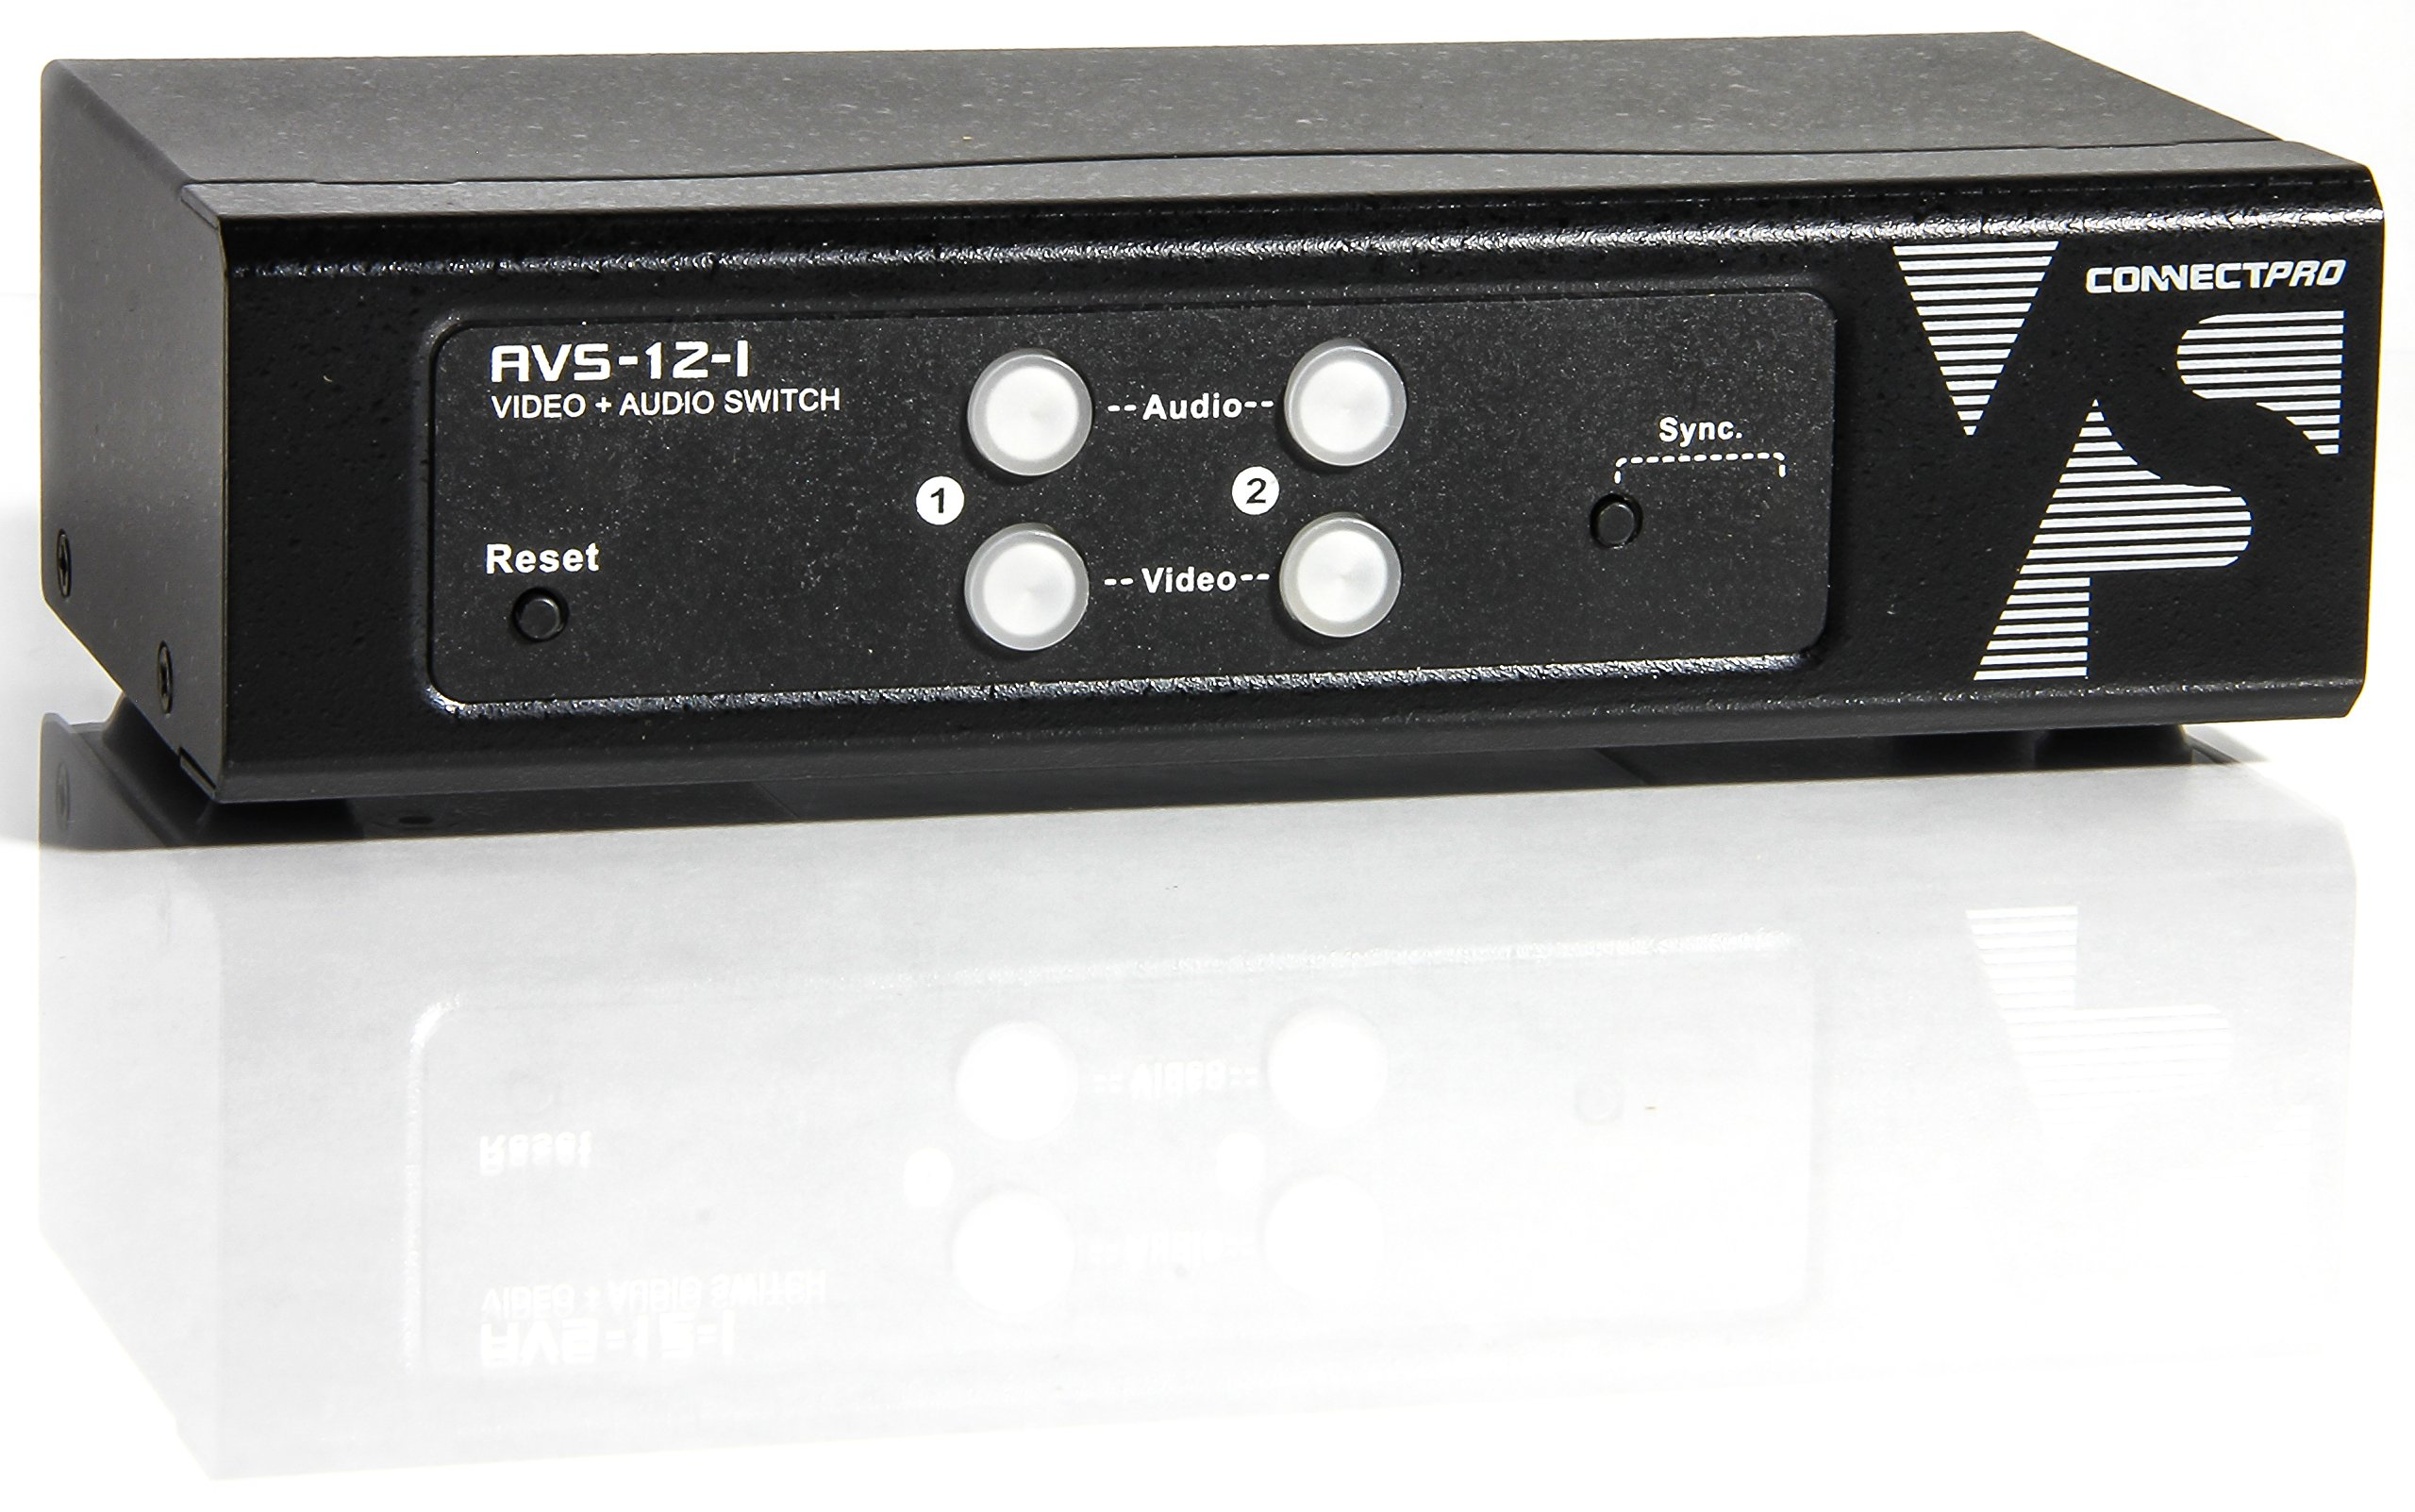 ConnectPRO 2-Port A/V Switch AVS-12-I